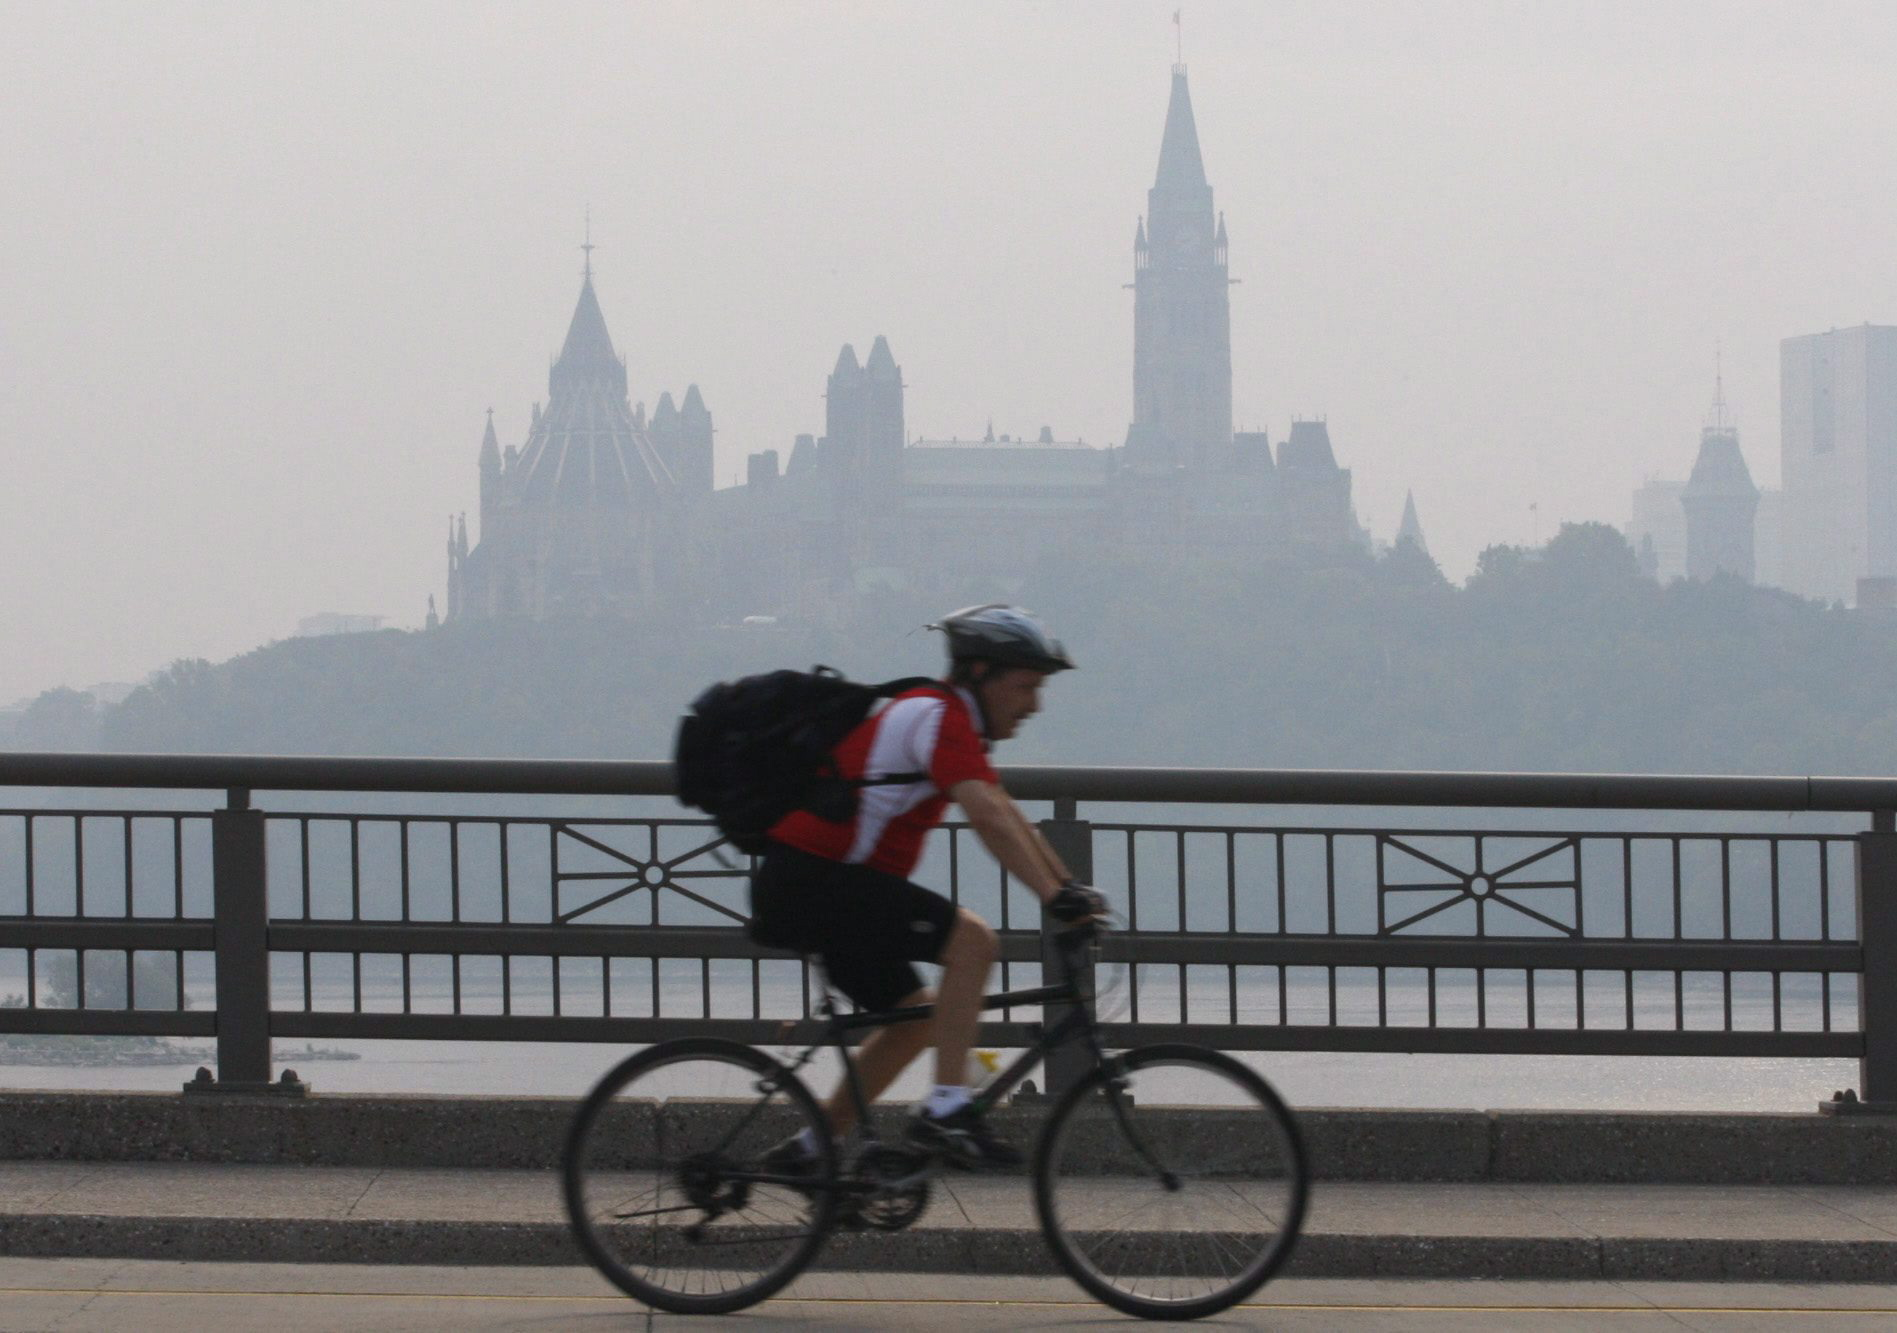 A cyclist make his way across a bridge into Ottawa as the Parliament buildings are seen through haze...